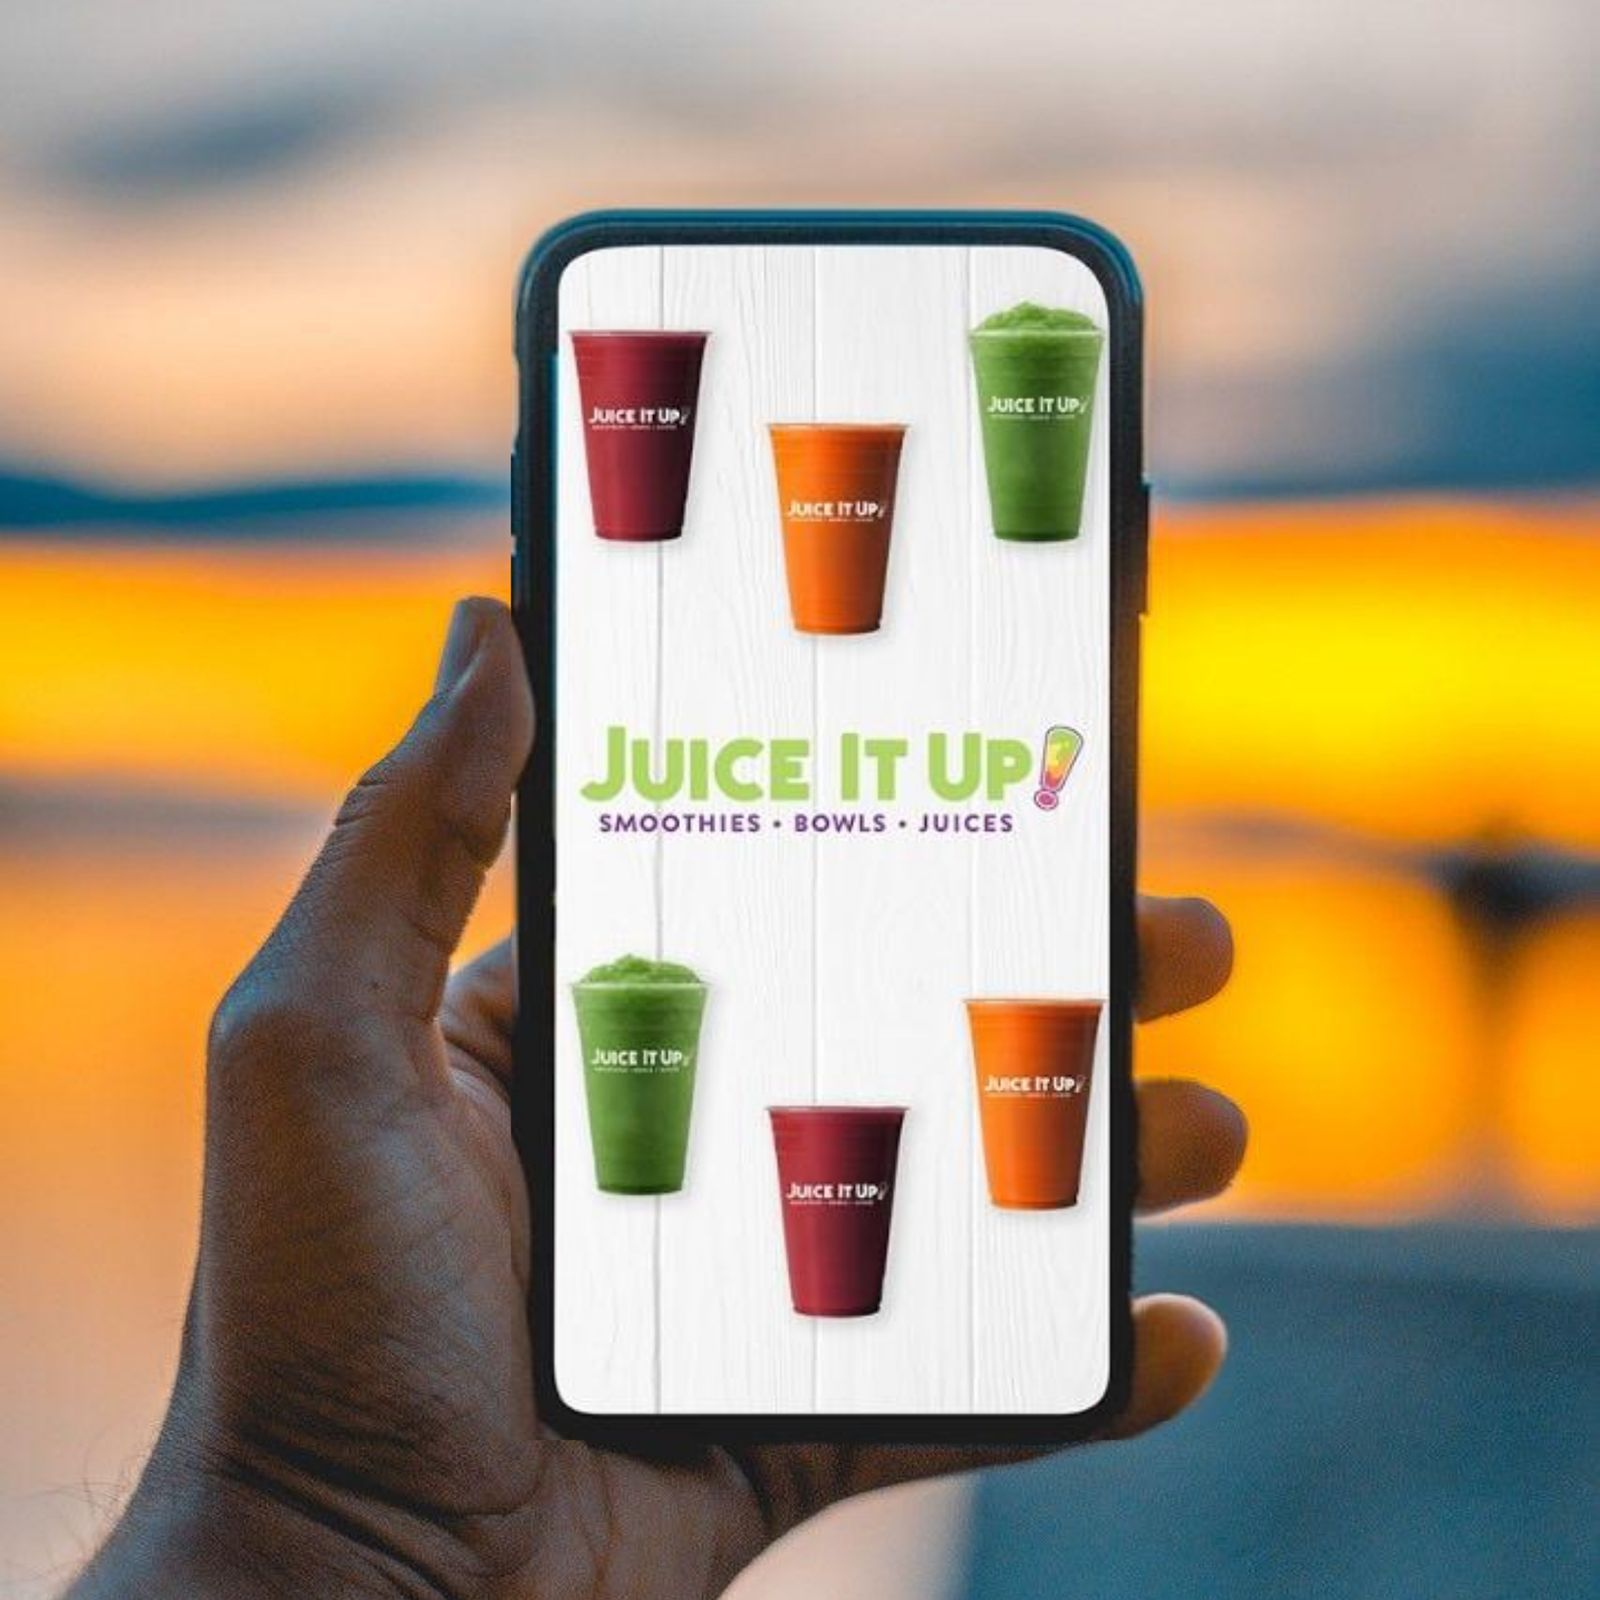 Juice It Up! Launches New Order Ahead Feature